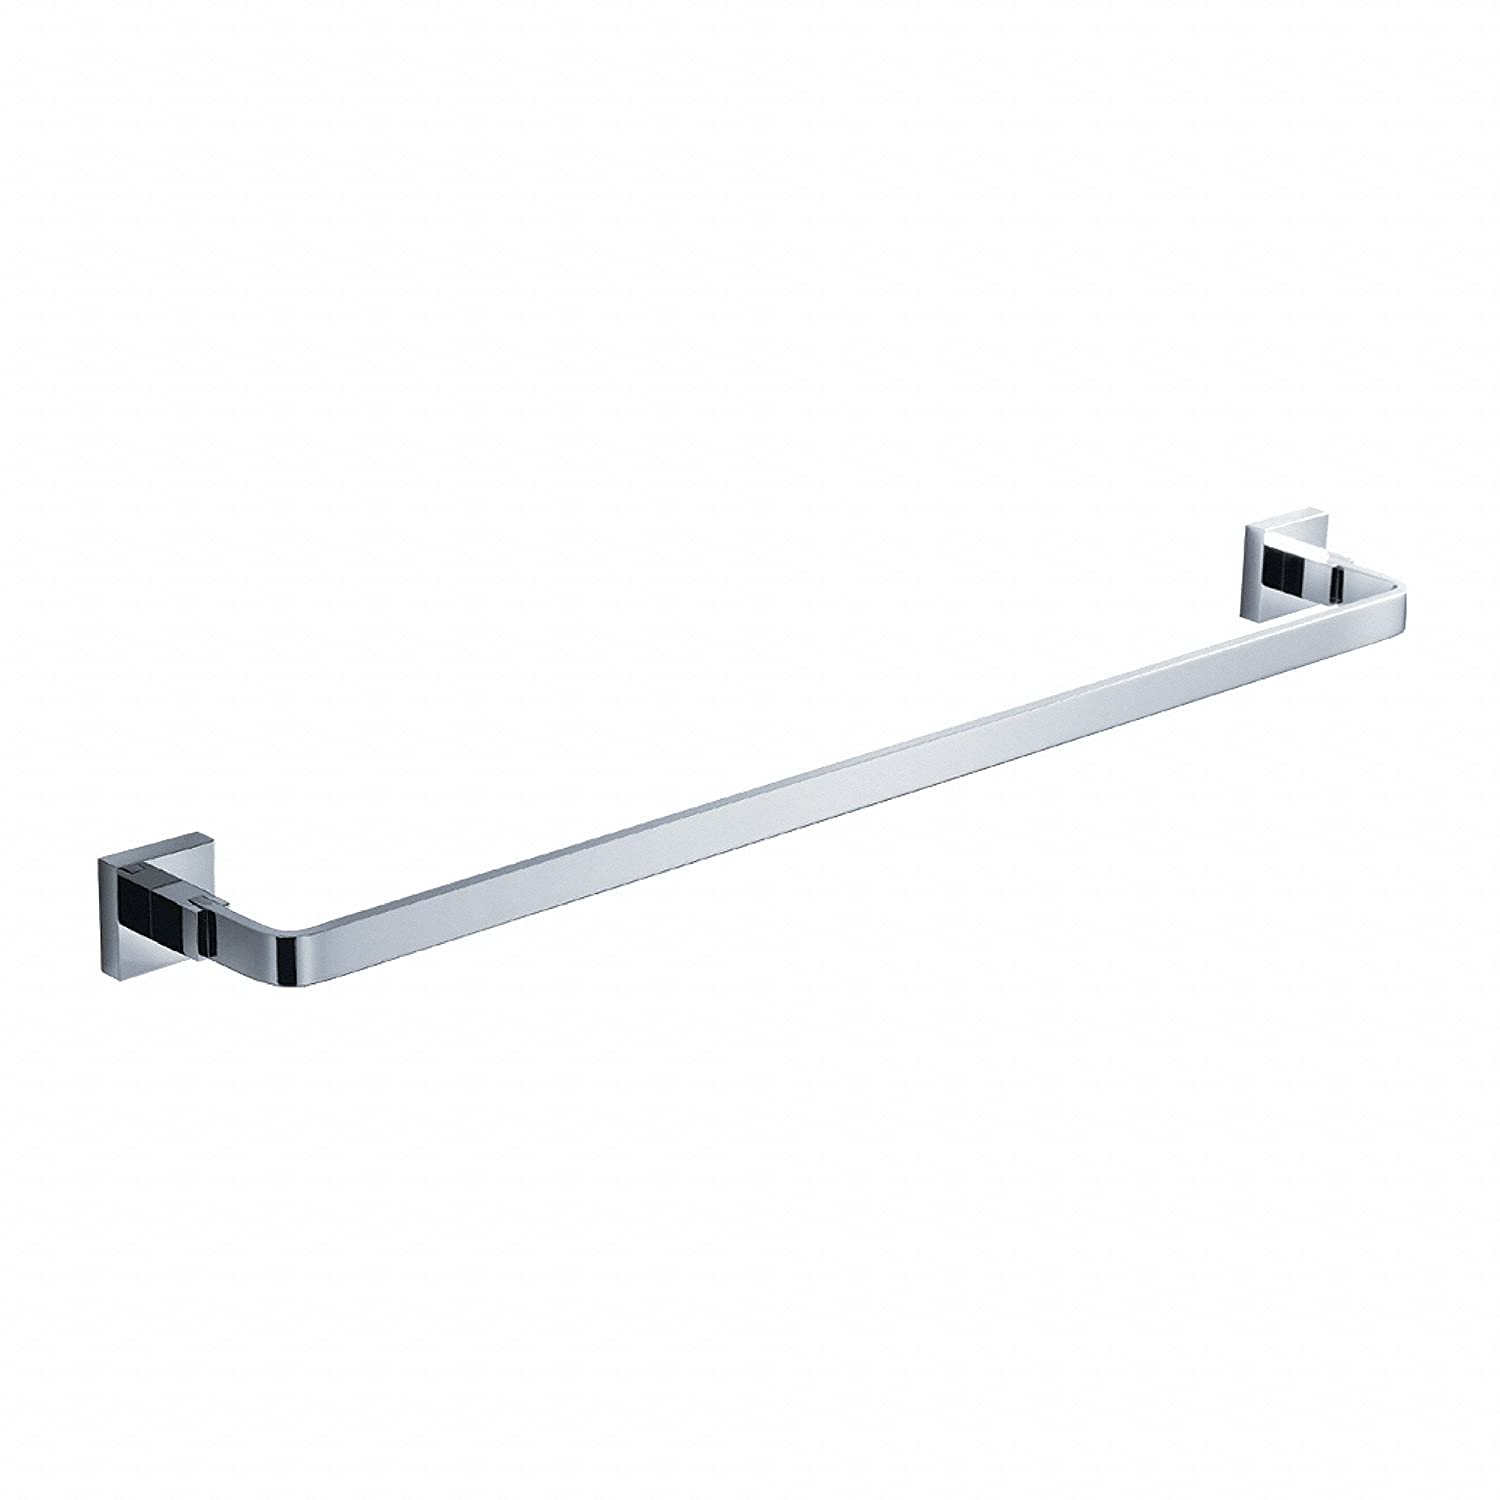 Kraus KEA 14437CH Aura Bathroom Accessories   Towel Bar 600mm     Amazon.com